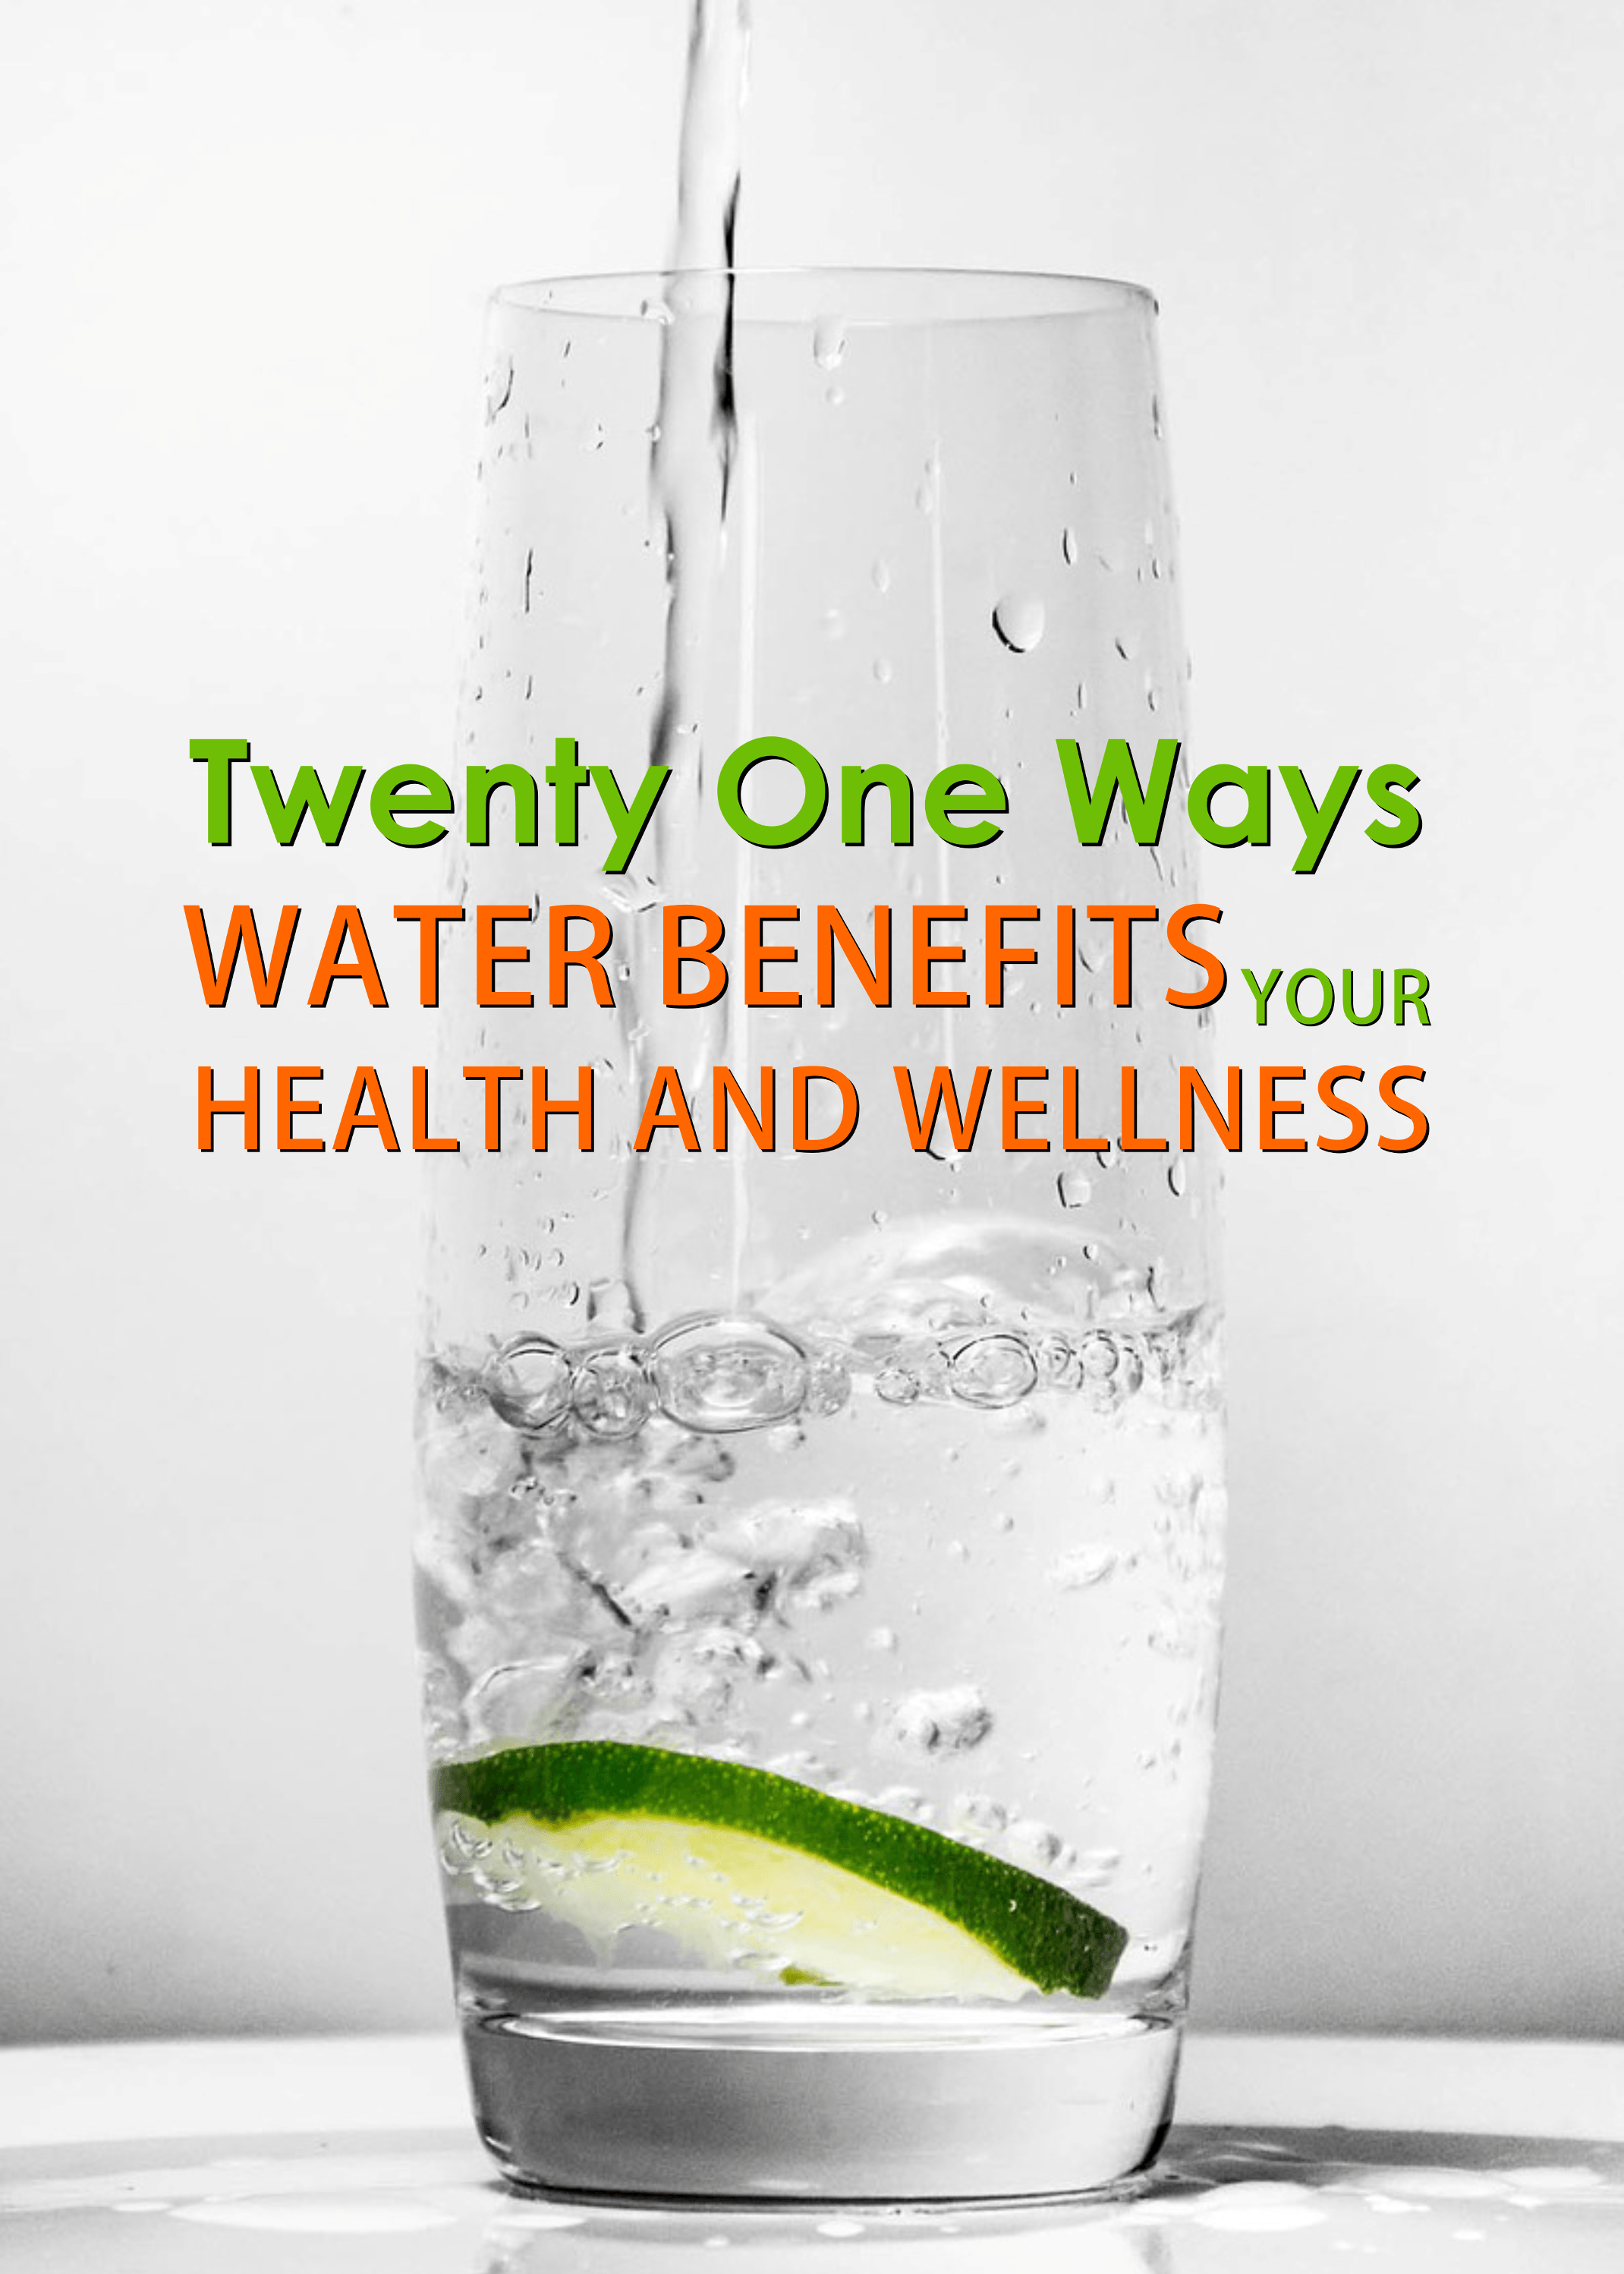 21 Health Benefits of Drinking Water. Why Drink More?